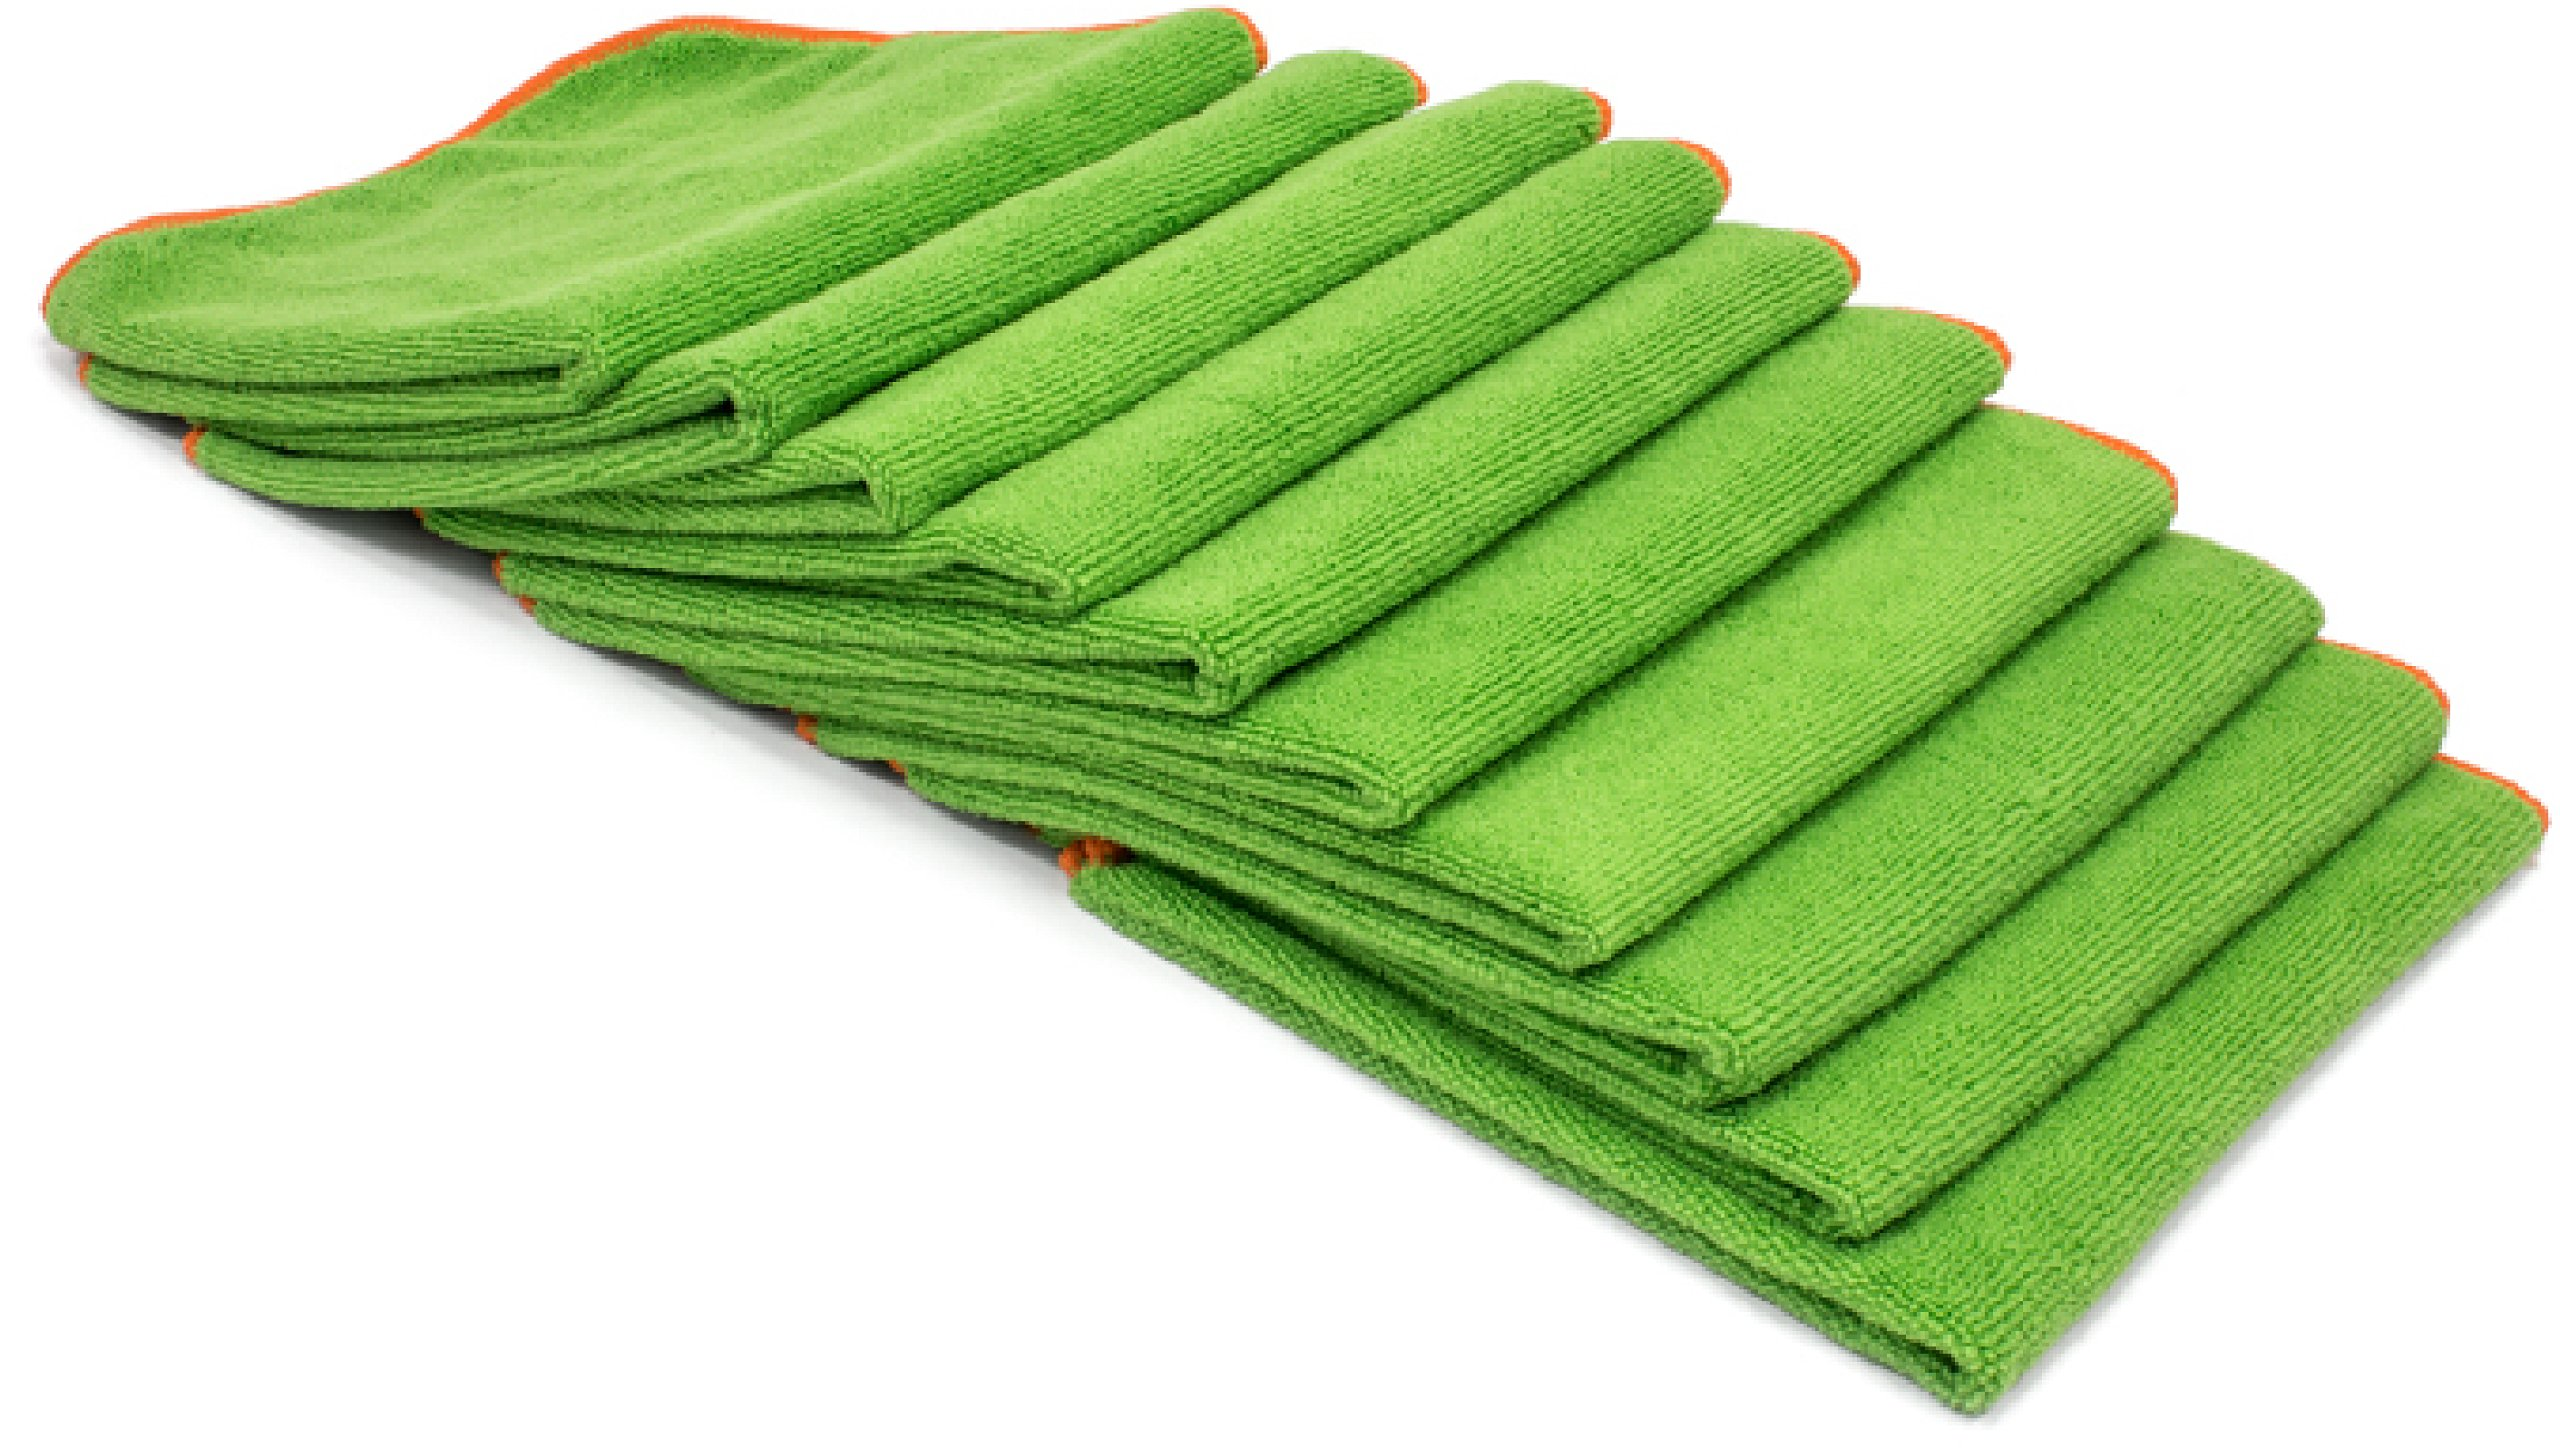 Silver Killer Antibacterial Microfiber Cloth 16 x 16 Towels Infused With EPA Registered SilverClear/™ Kills Viruses Staph and MERSA Bacteria Green, 12